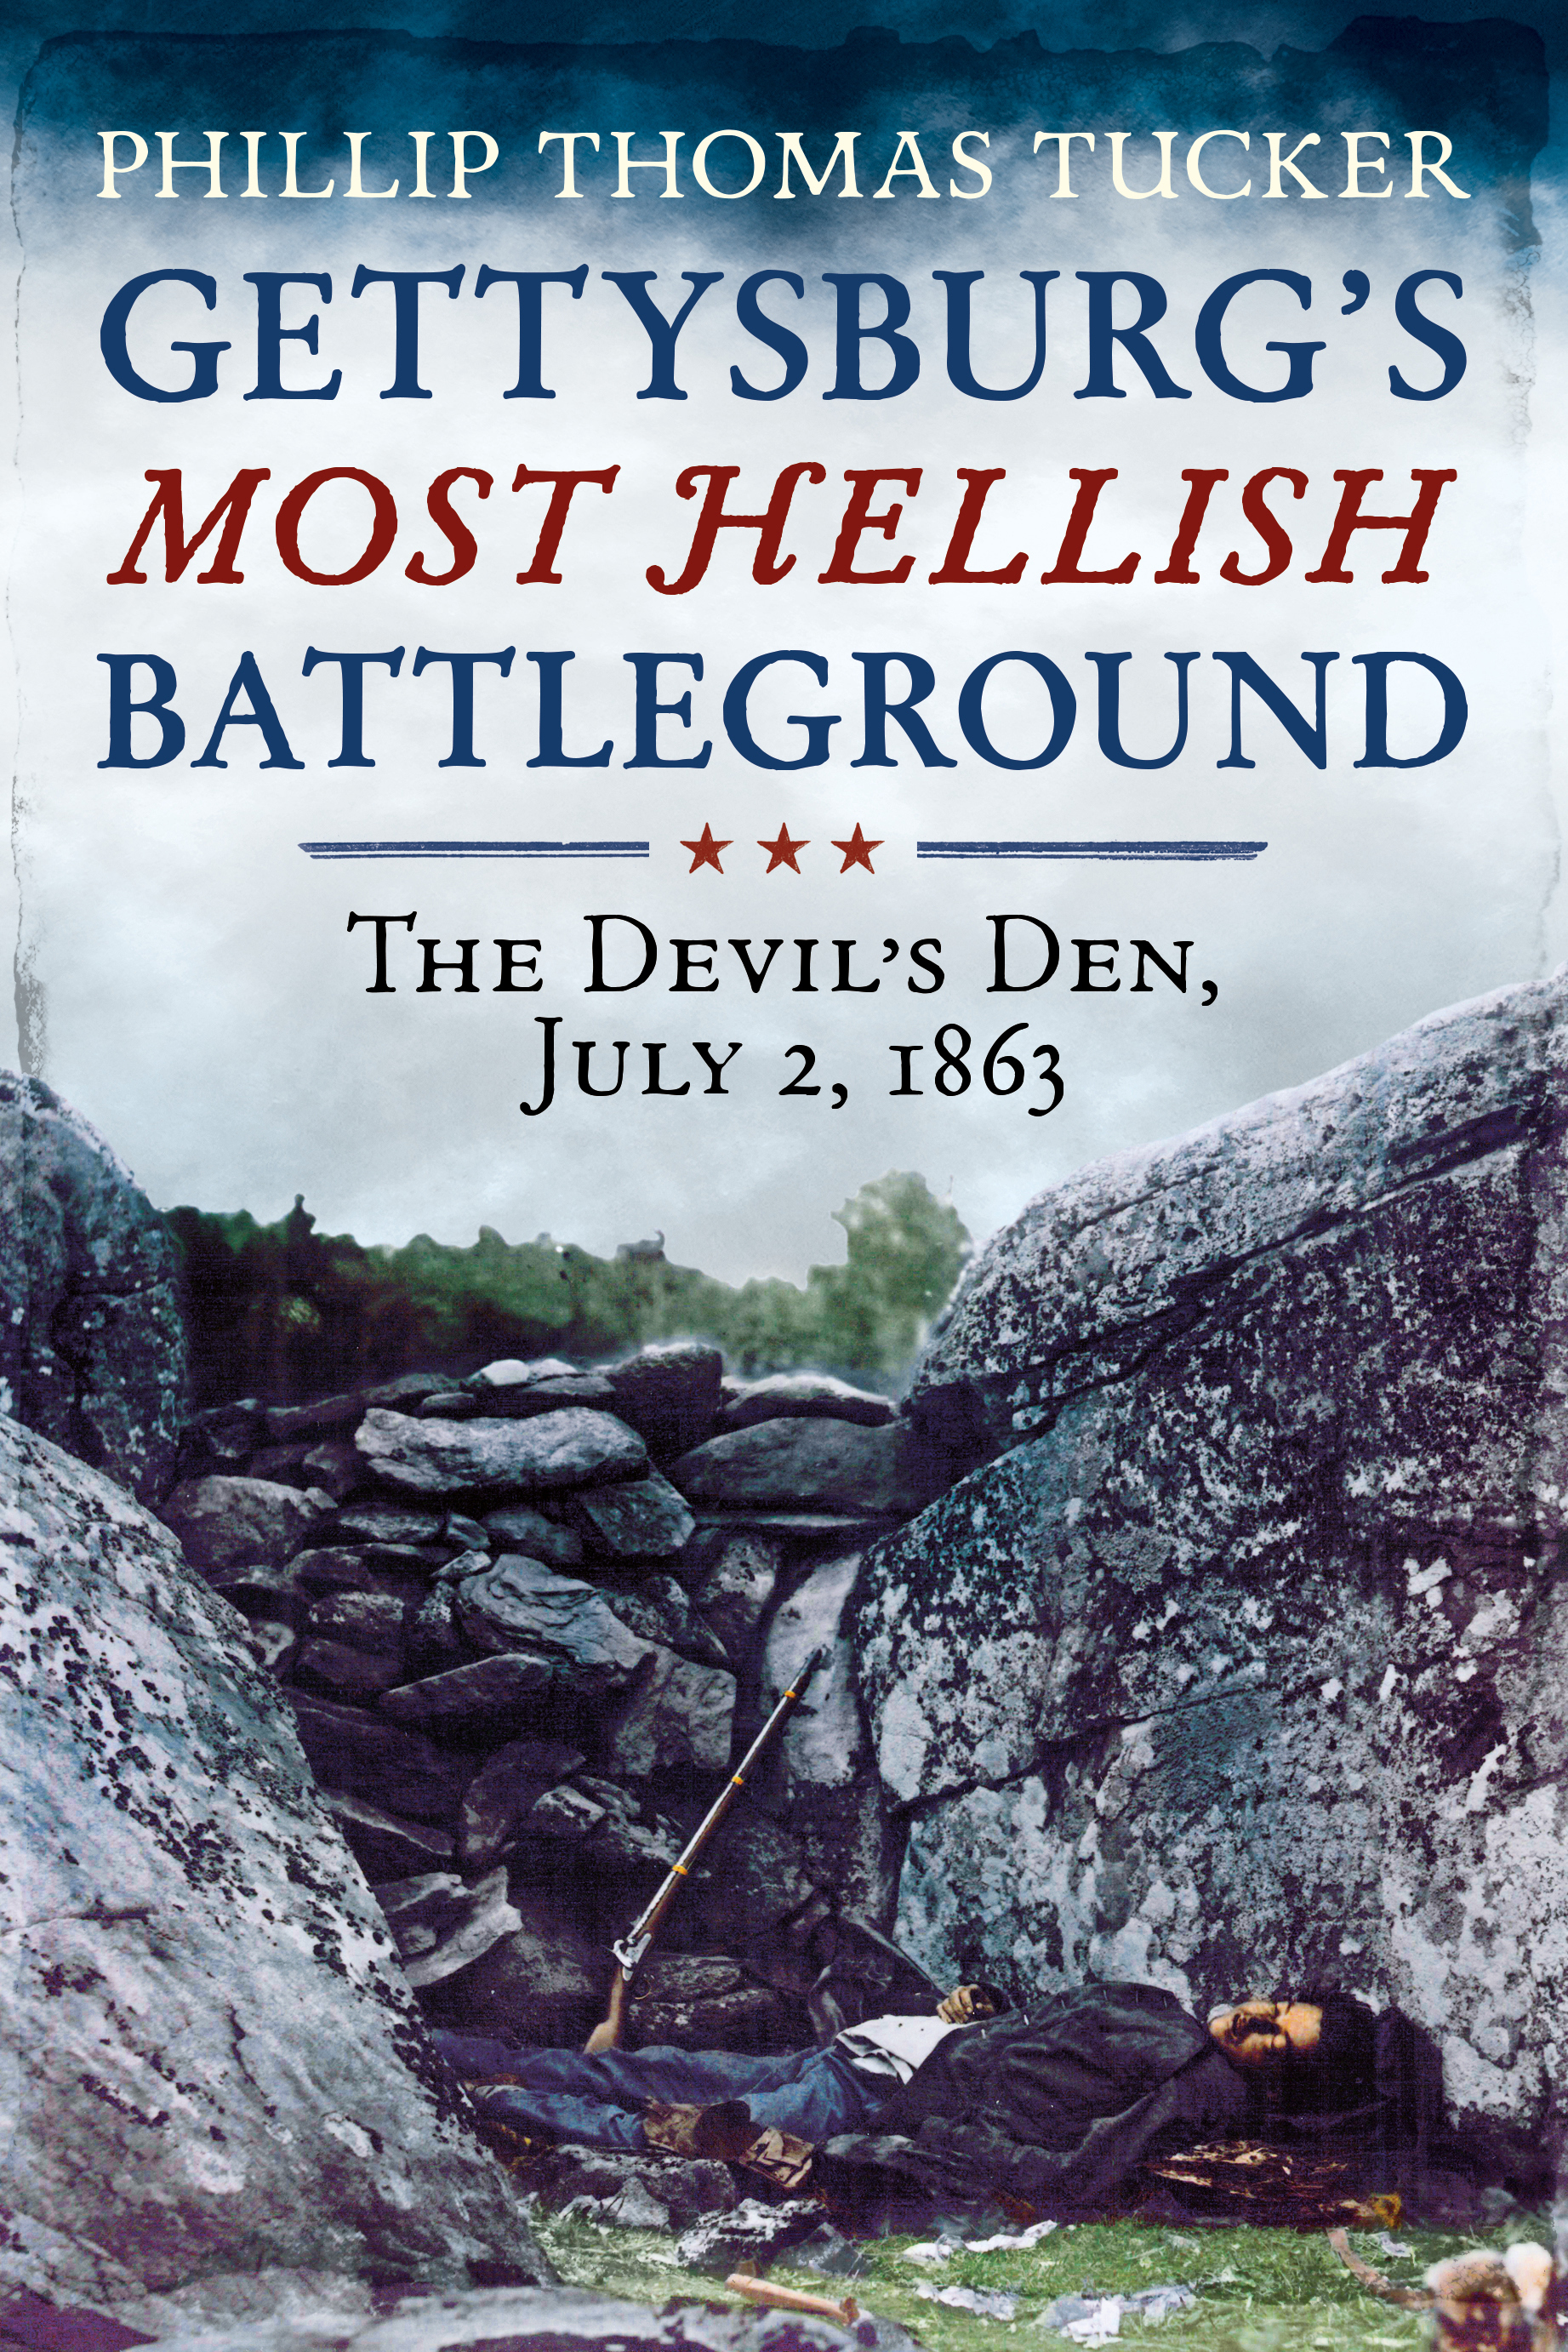 Gettysburg's Most Hellish Battleground: The Devil's Den, July 2, 1863